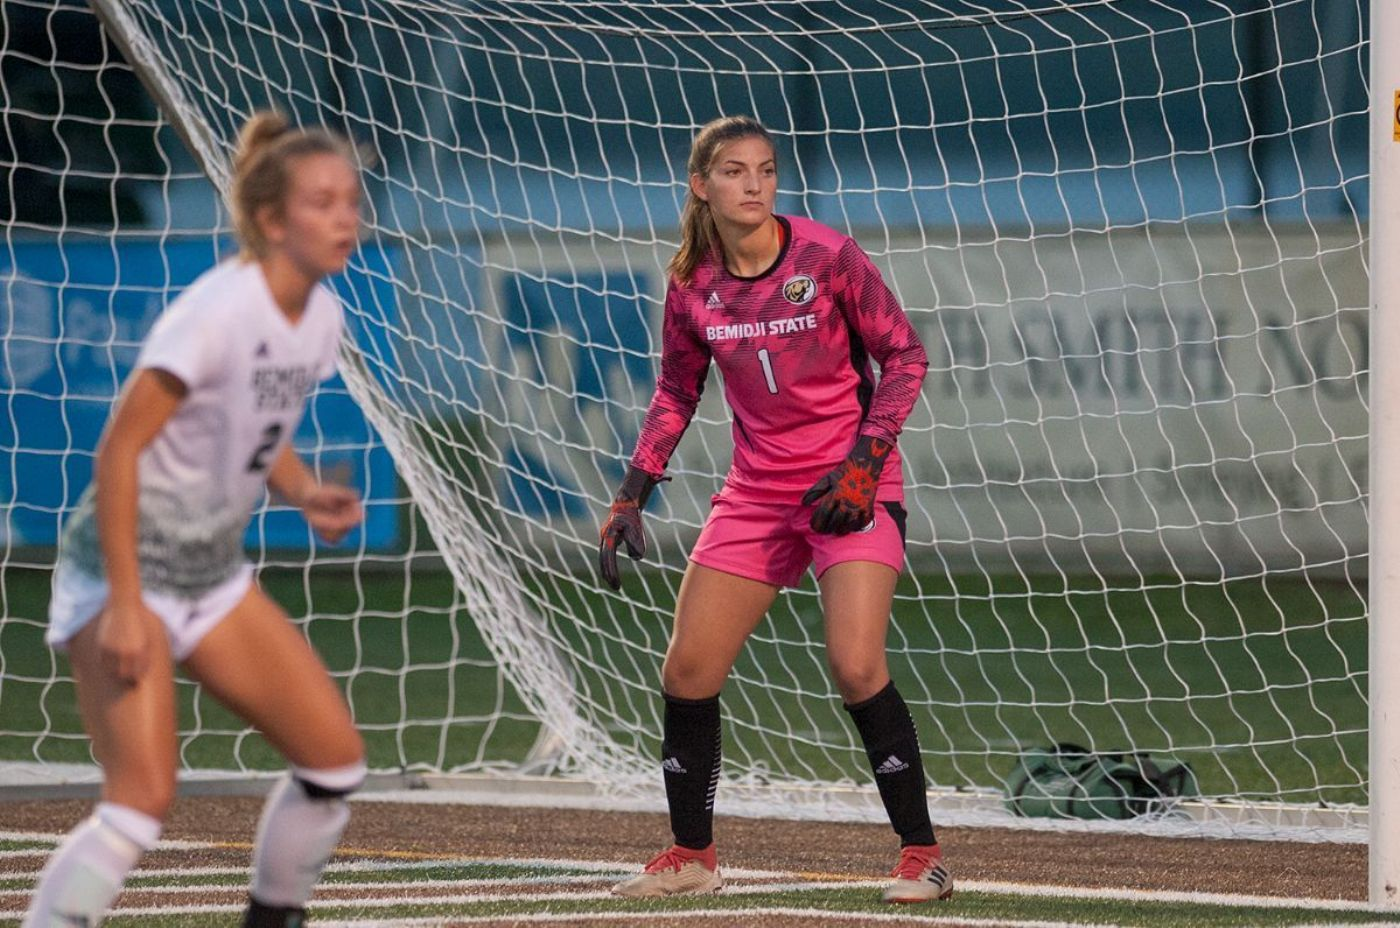 Stumbaugh leads No. 11 Beavers to 3-0 victory over St. Cloud State